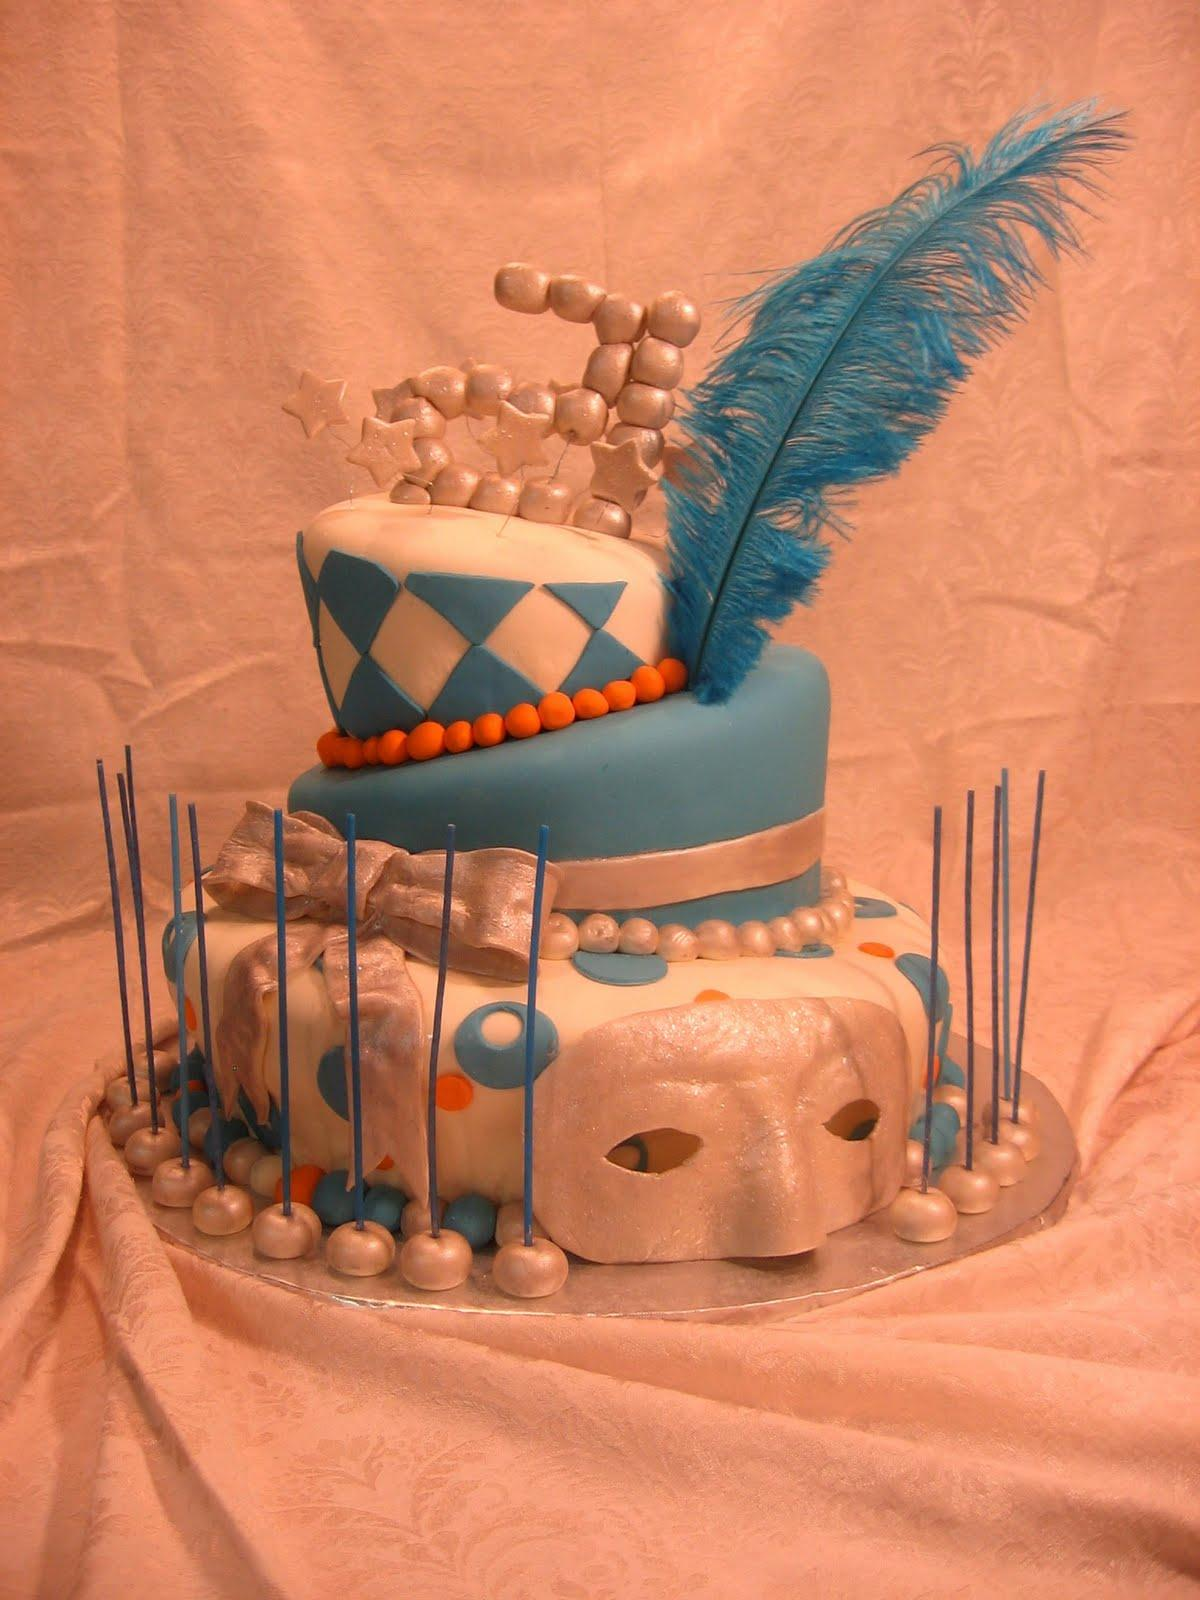 weddings, sweet cake aug Masquerade centerpieces for quinceaneras